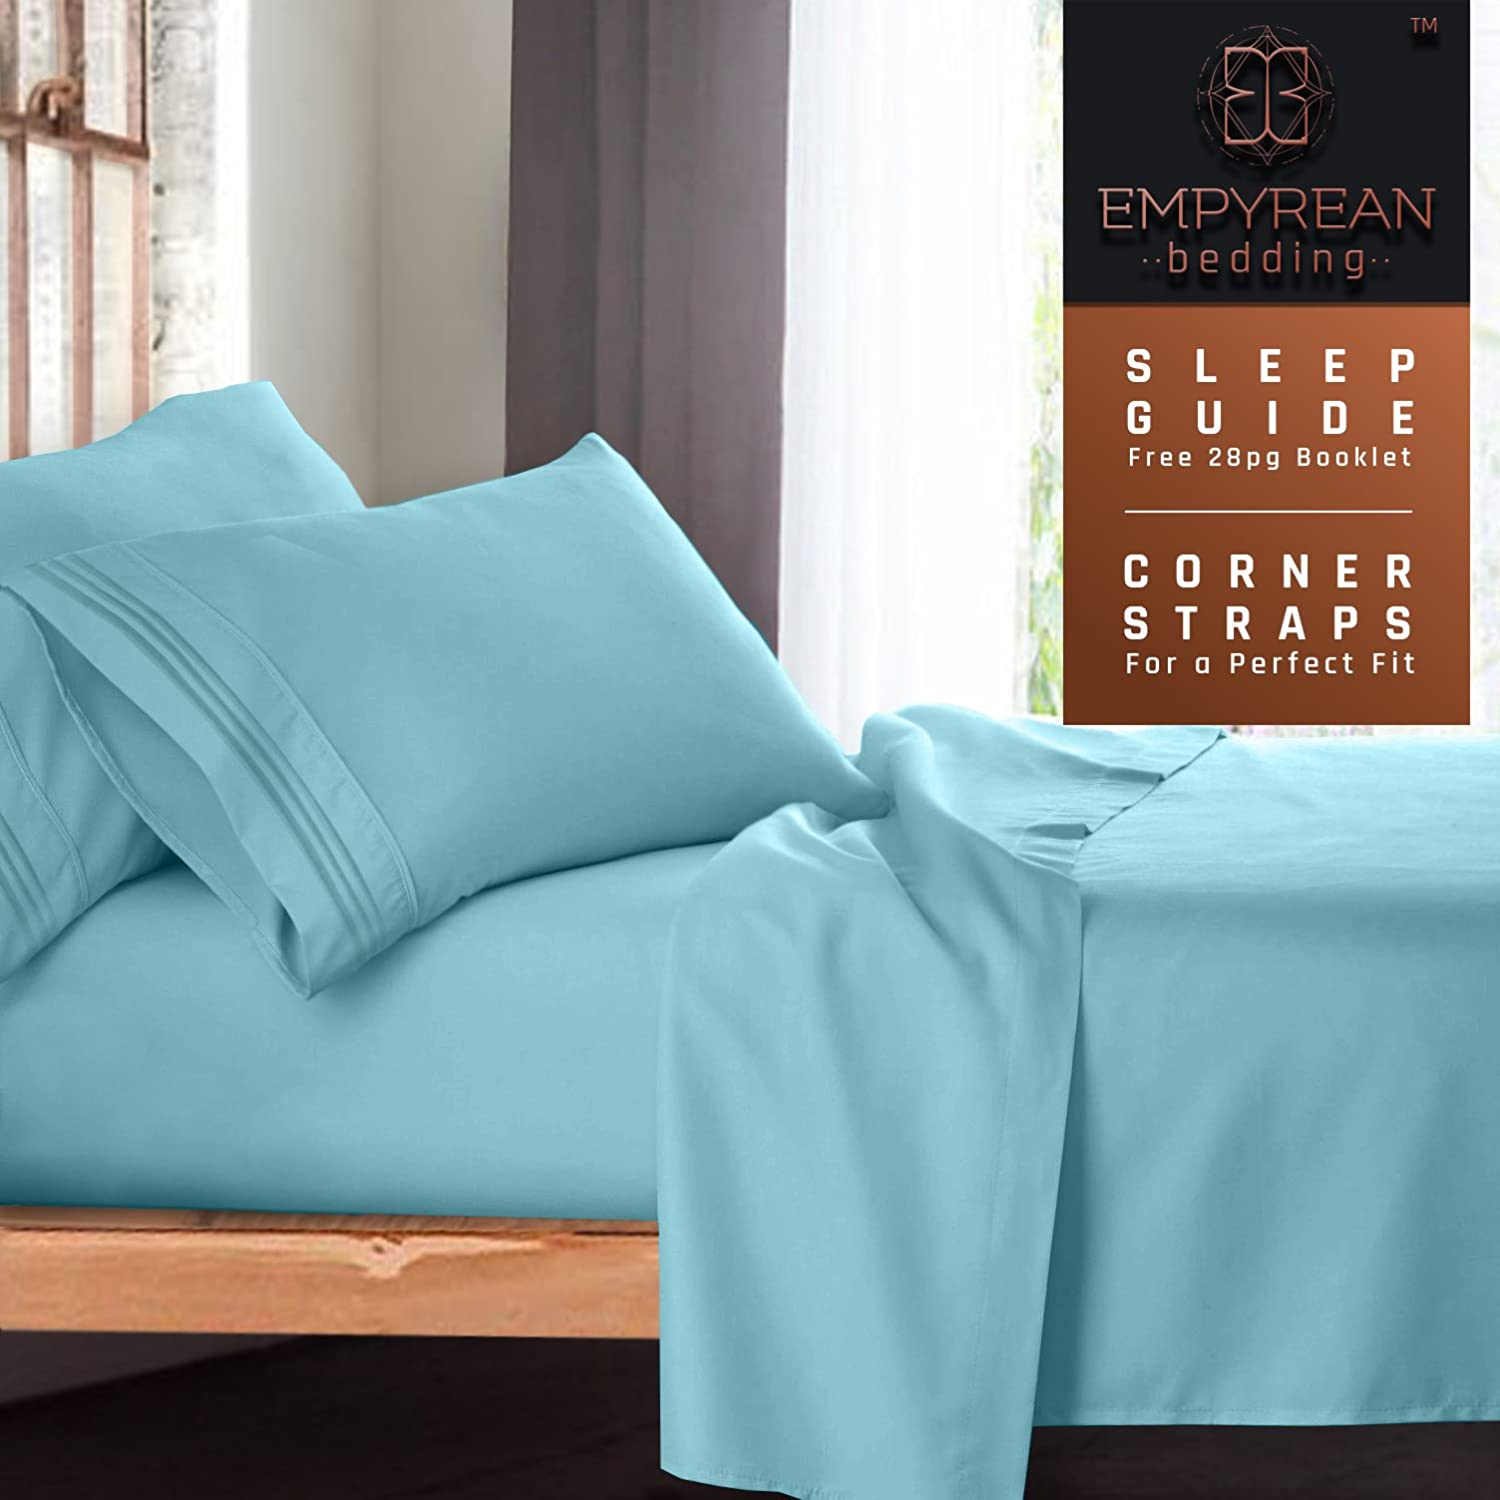 Queen Size Bed Sheets Set, Light Blue Aqua - Soft Luxury Best Quality 4-Piece Bed Set